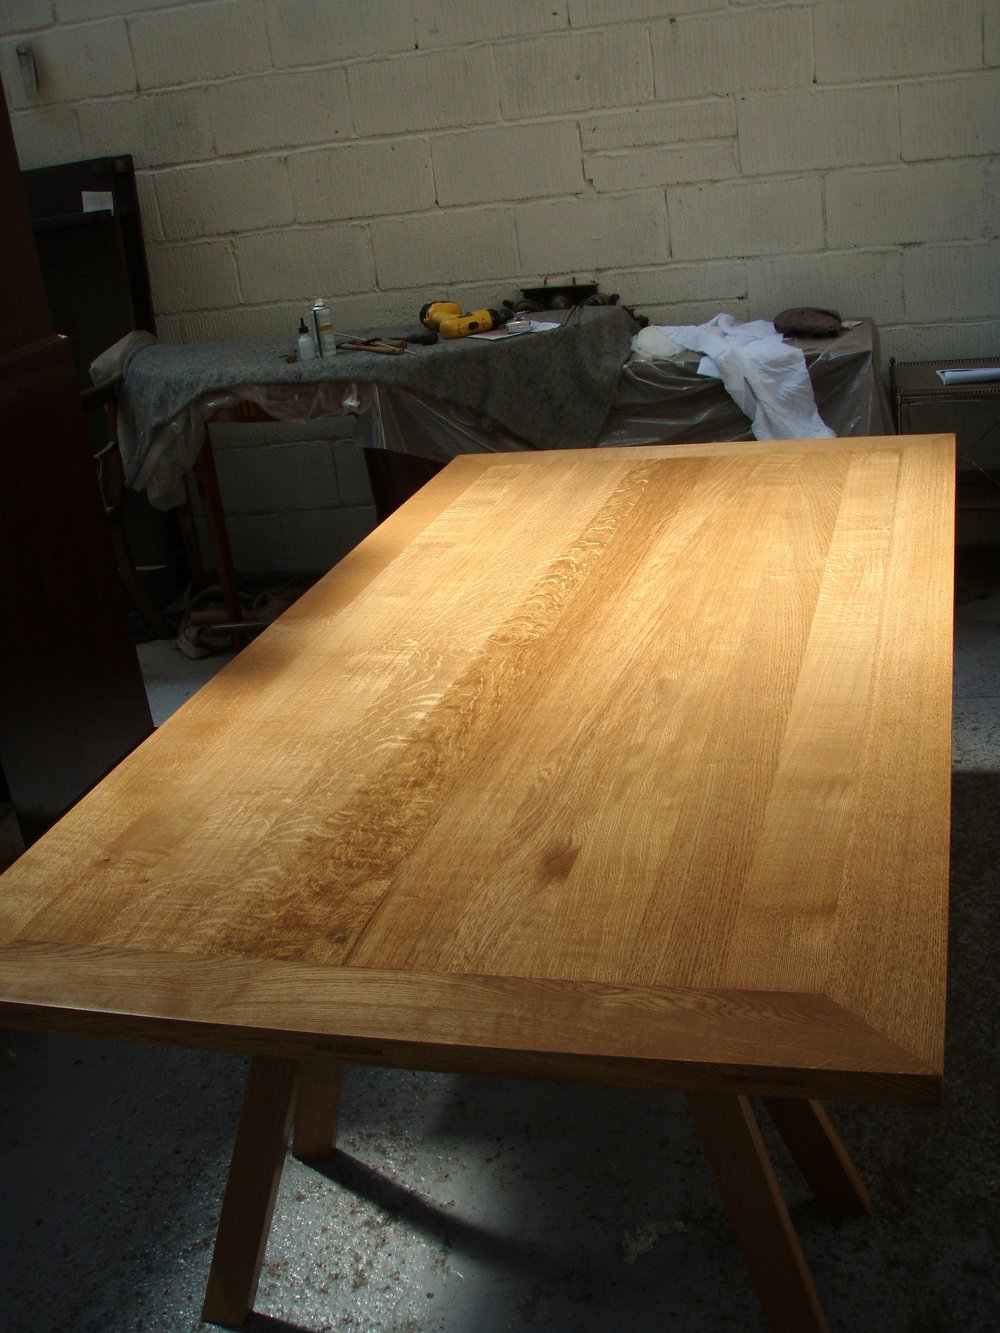 Pattern Makers Table - Based on a workshop bench, this table is made from solid oak with a shellac finish.